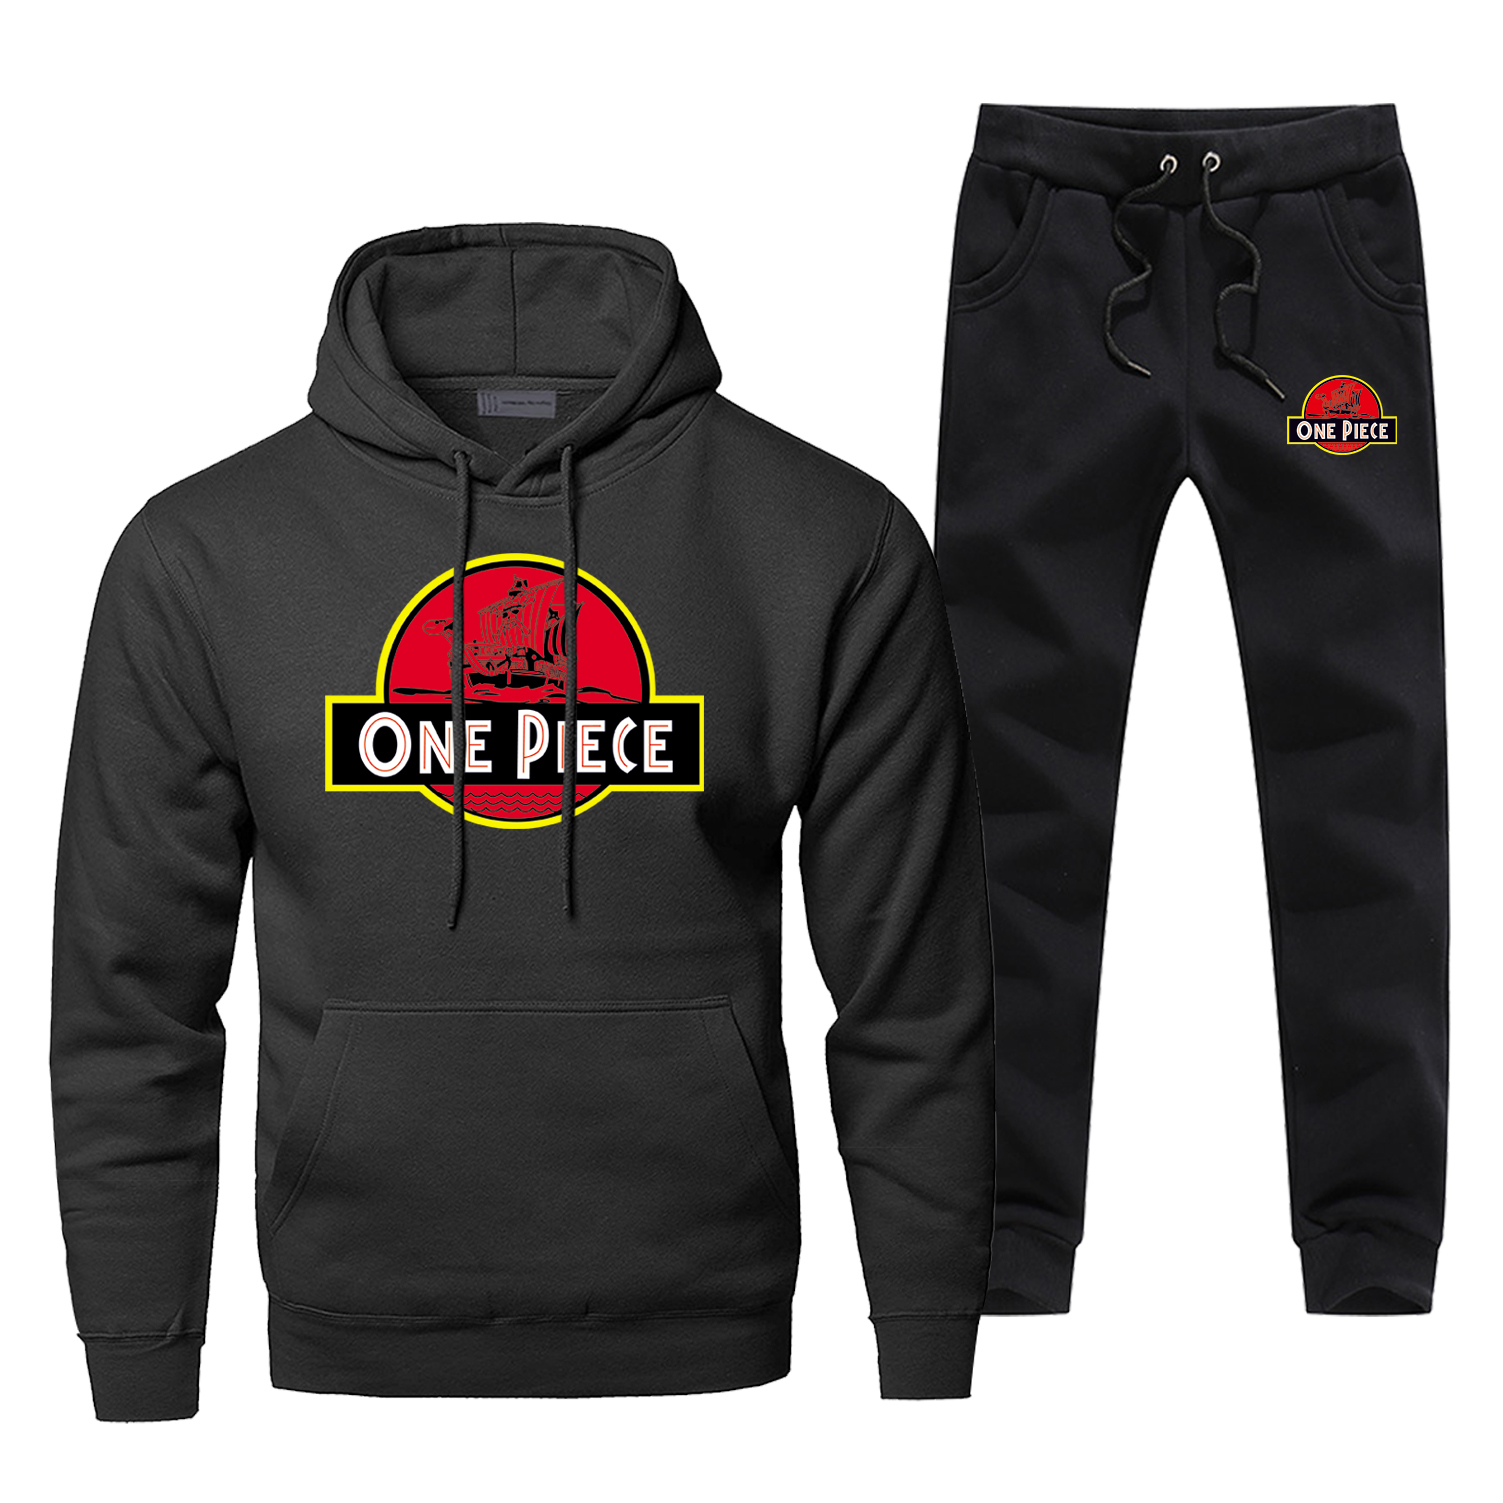 One Piece Hoodies Pants Men Sets Track Suit Japan Anime Pant Sweatshirt Sweatpants Sportswear Spring Autumn 2 PCS Tracksuit Mens